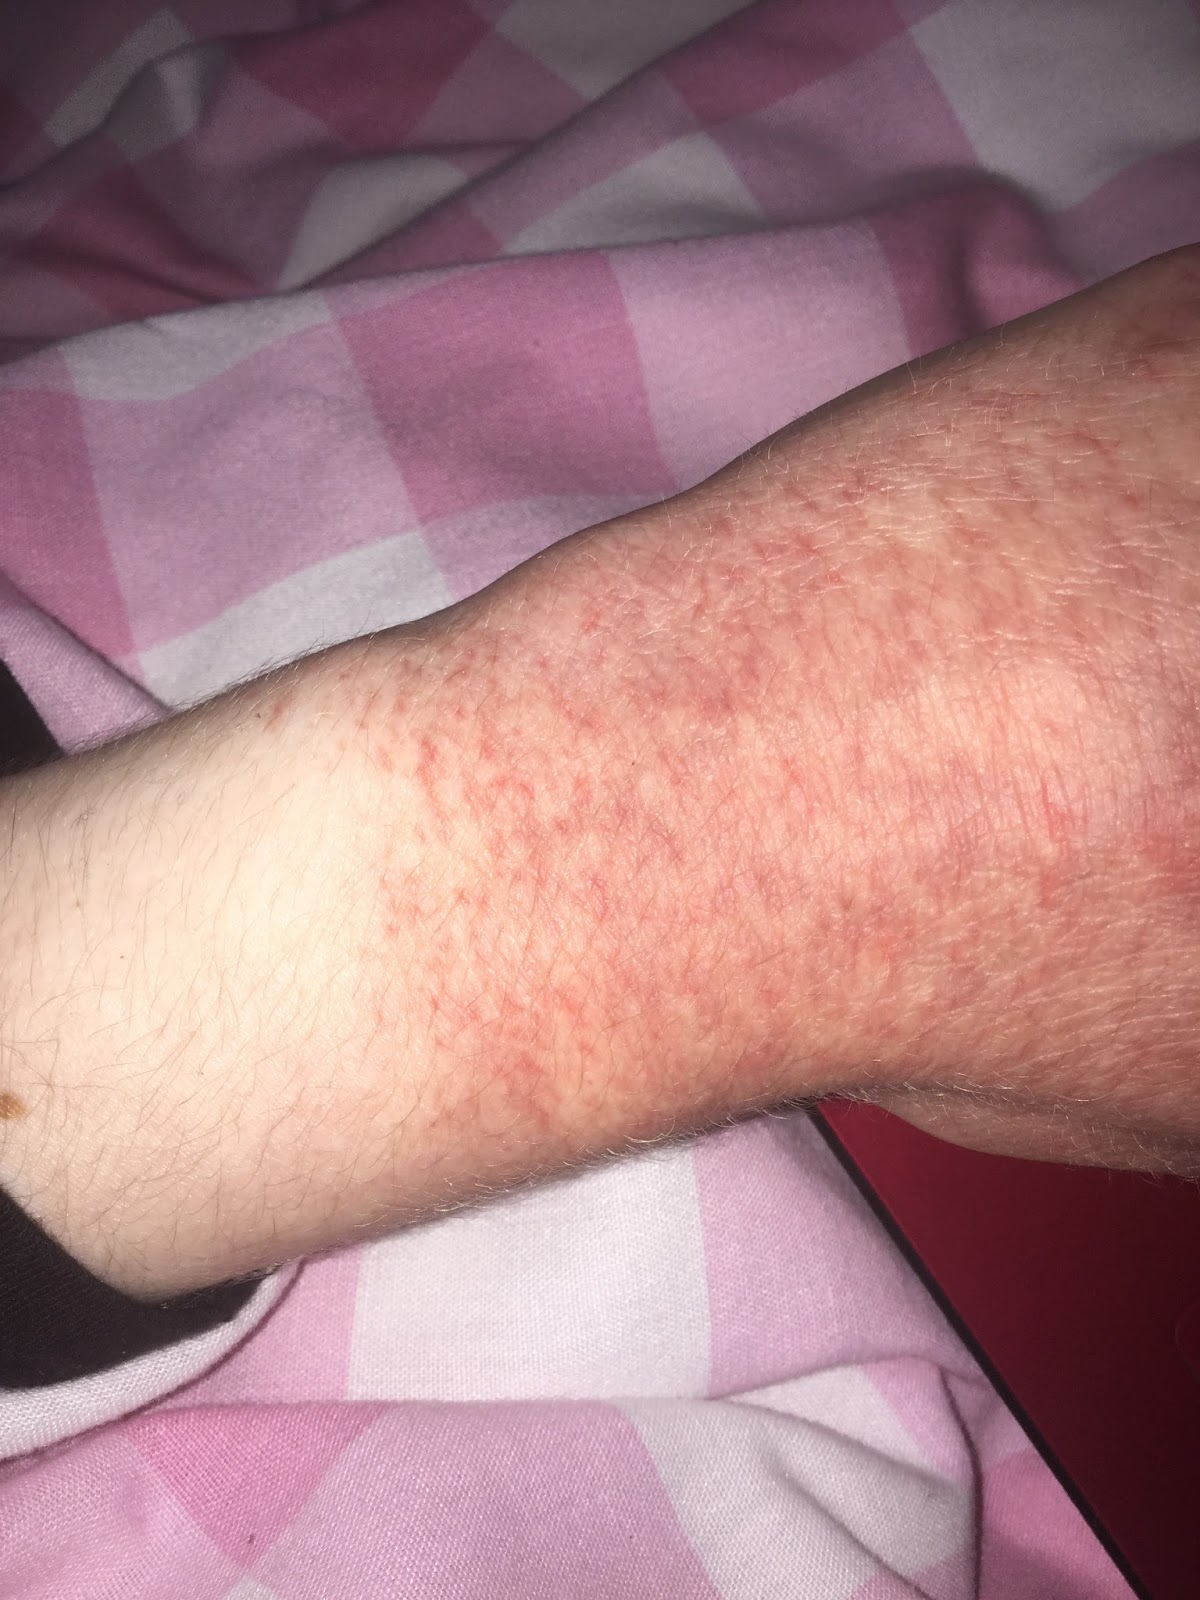 What's It's Like Living With Emetophobia (A Fear Of Being Sick) OCD hands over washed sore red cracked